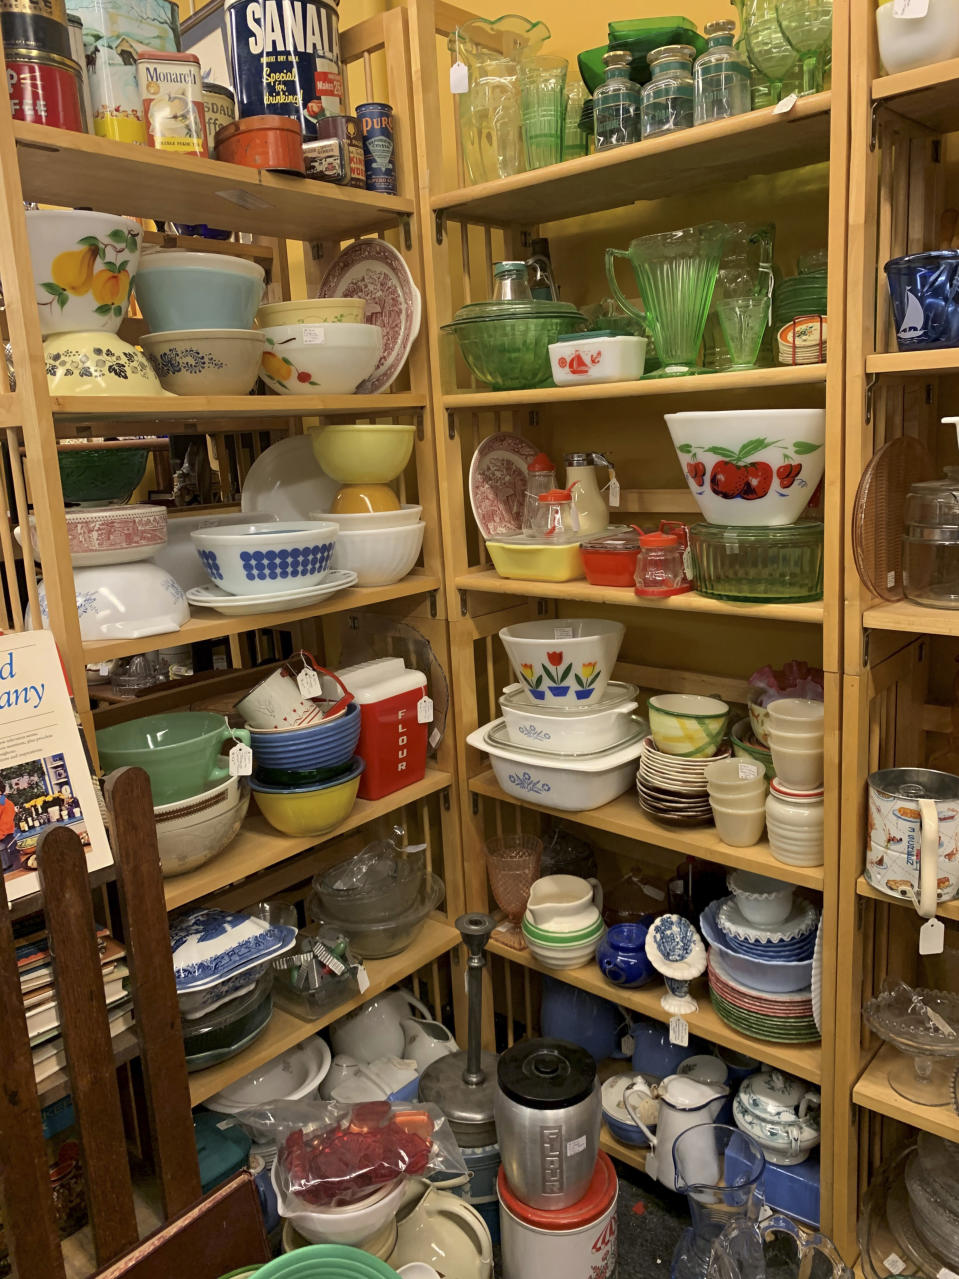 """This image provided by Tracee Herbaugh exhibits some of the vintage kitchenware available at a Waltham, Massachusetts antique shop. Television and social media have also generated interest. Series like """"WandaVision,"""" """"Firefly Lane,"""" """"The Marvelous Mrs. Maisel"""" and """"Mad Men"""" all highlight midcentury kitchens and kitchenware. (Tracee Herbaugh via AP)"""